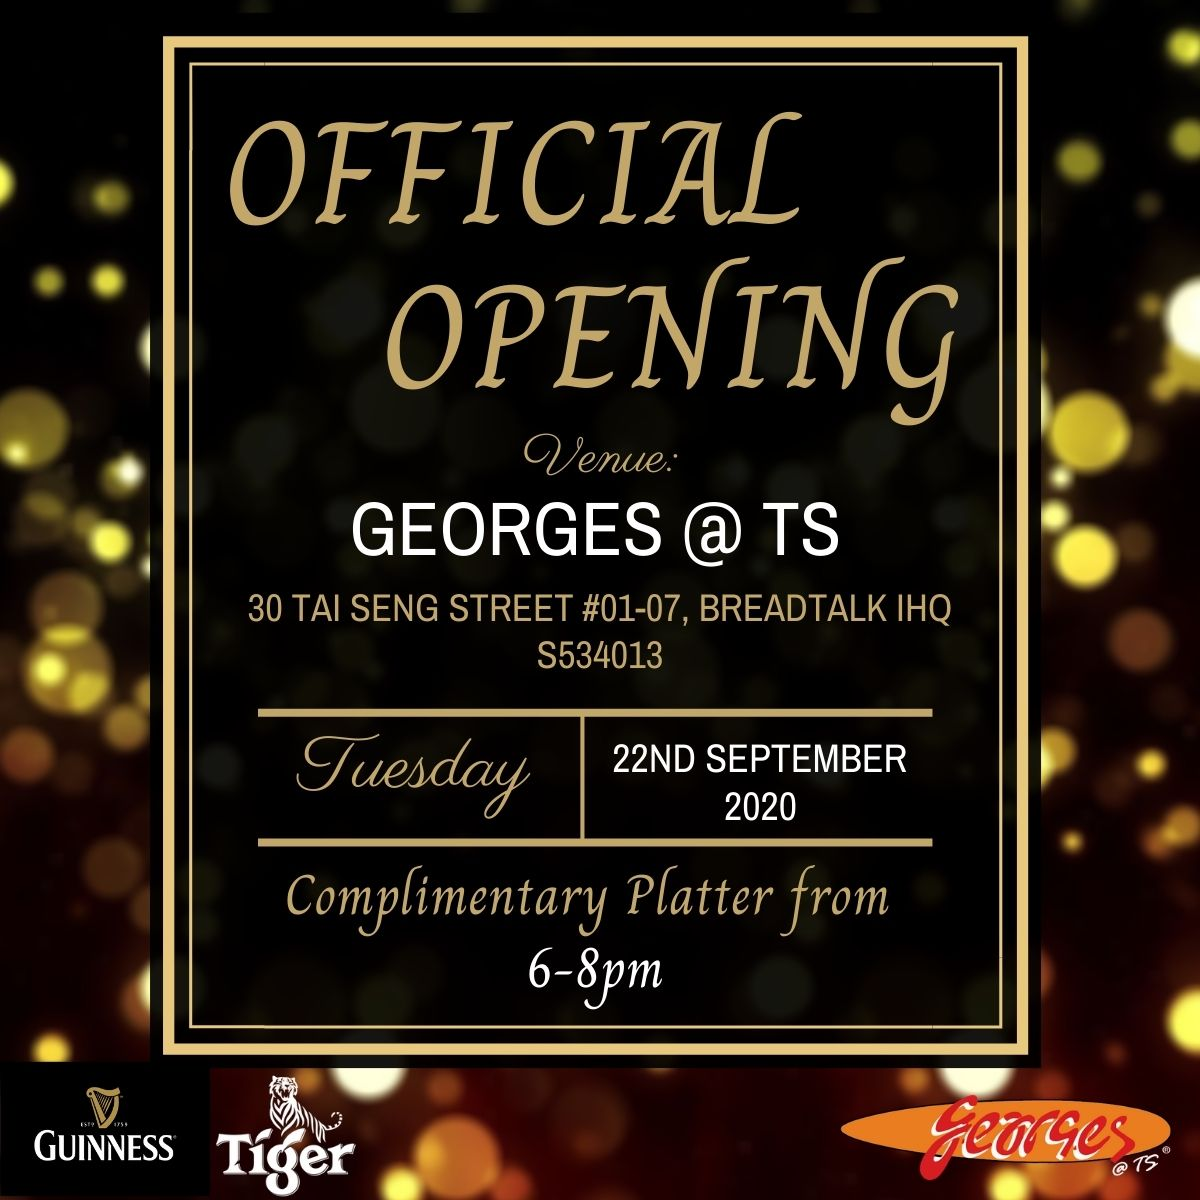 georges @ ts